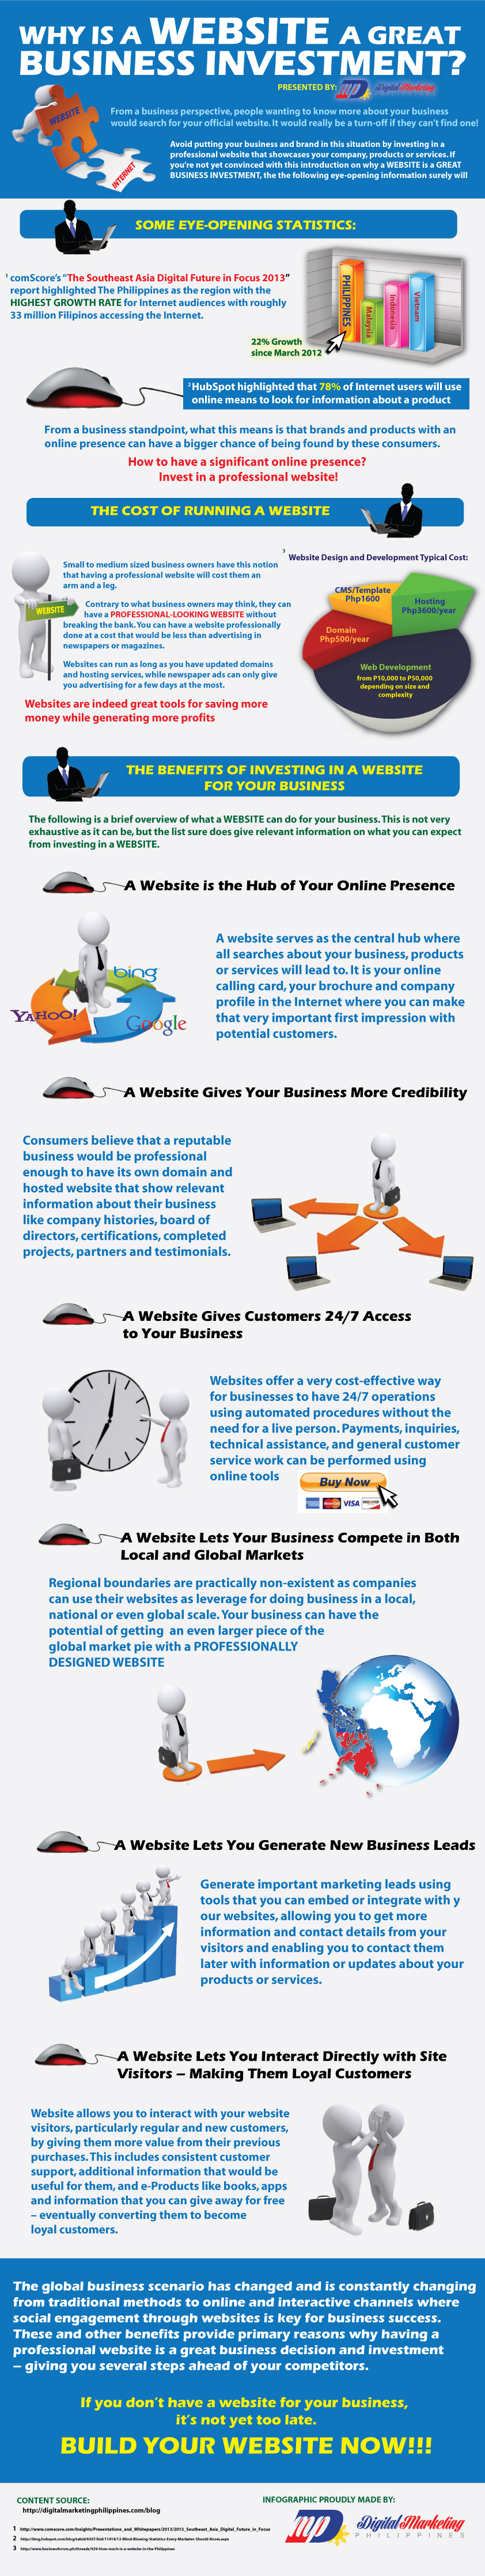 Why A Website is a Great Business Investment